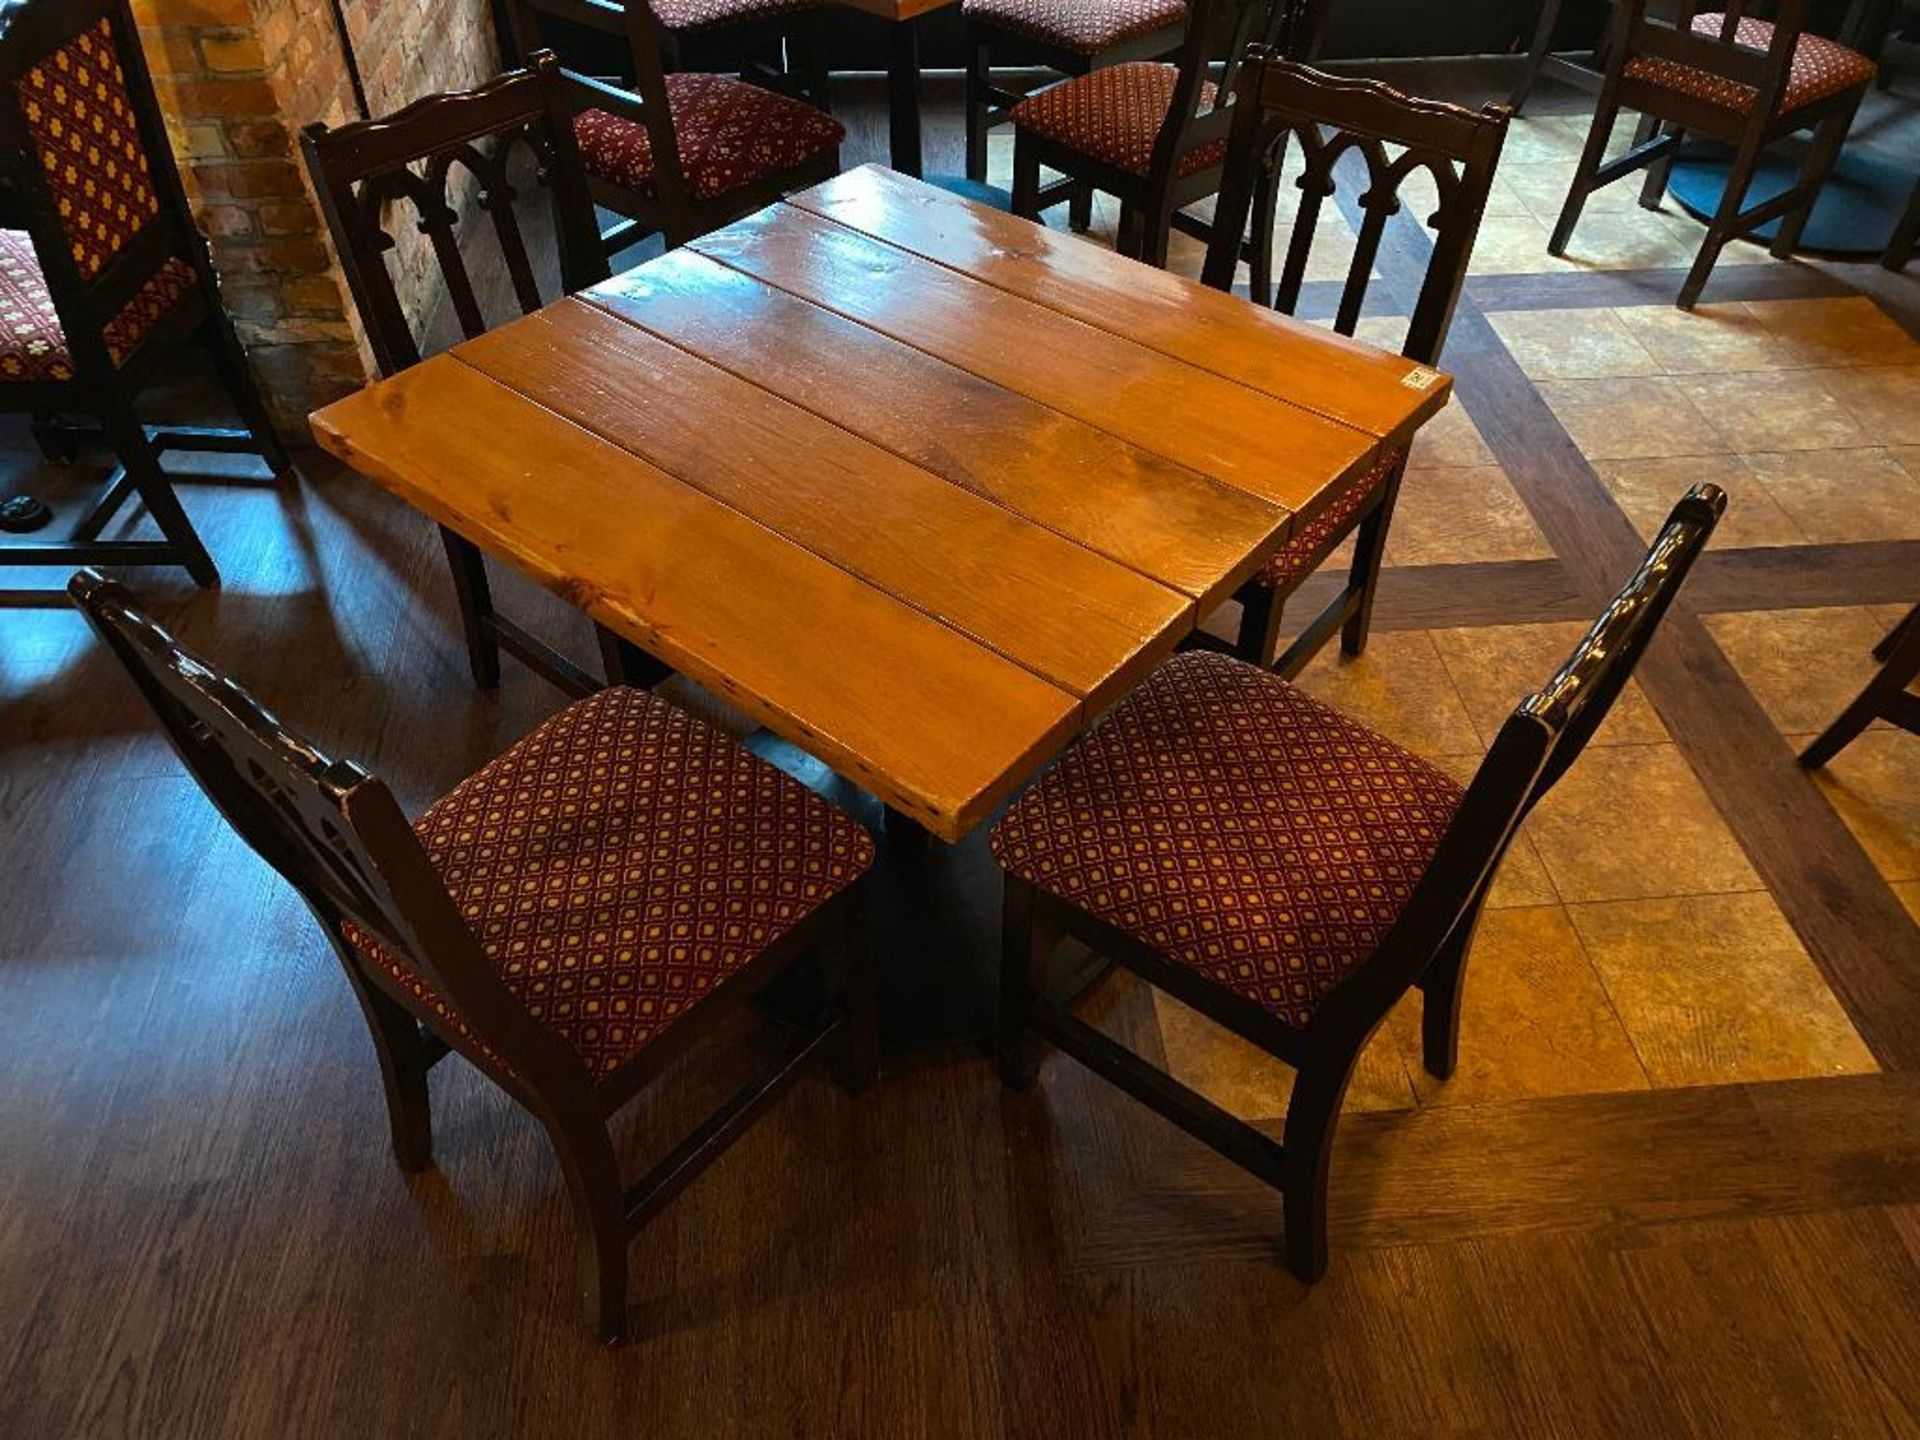 """36"""" X 36"""" SQUARE WOOD TOP TABLE WITH 4 CHAIRS - Image 2 of 2"""